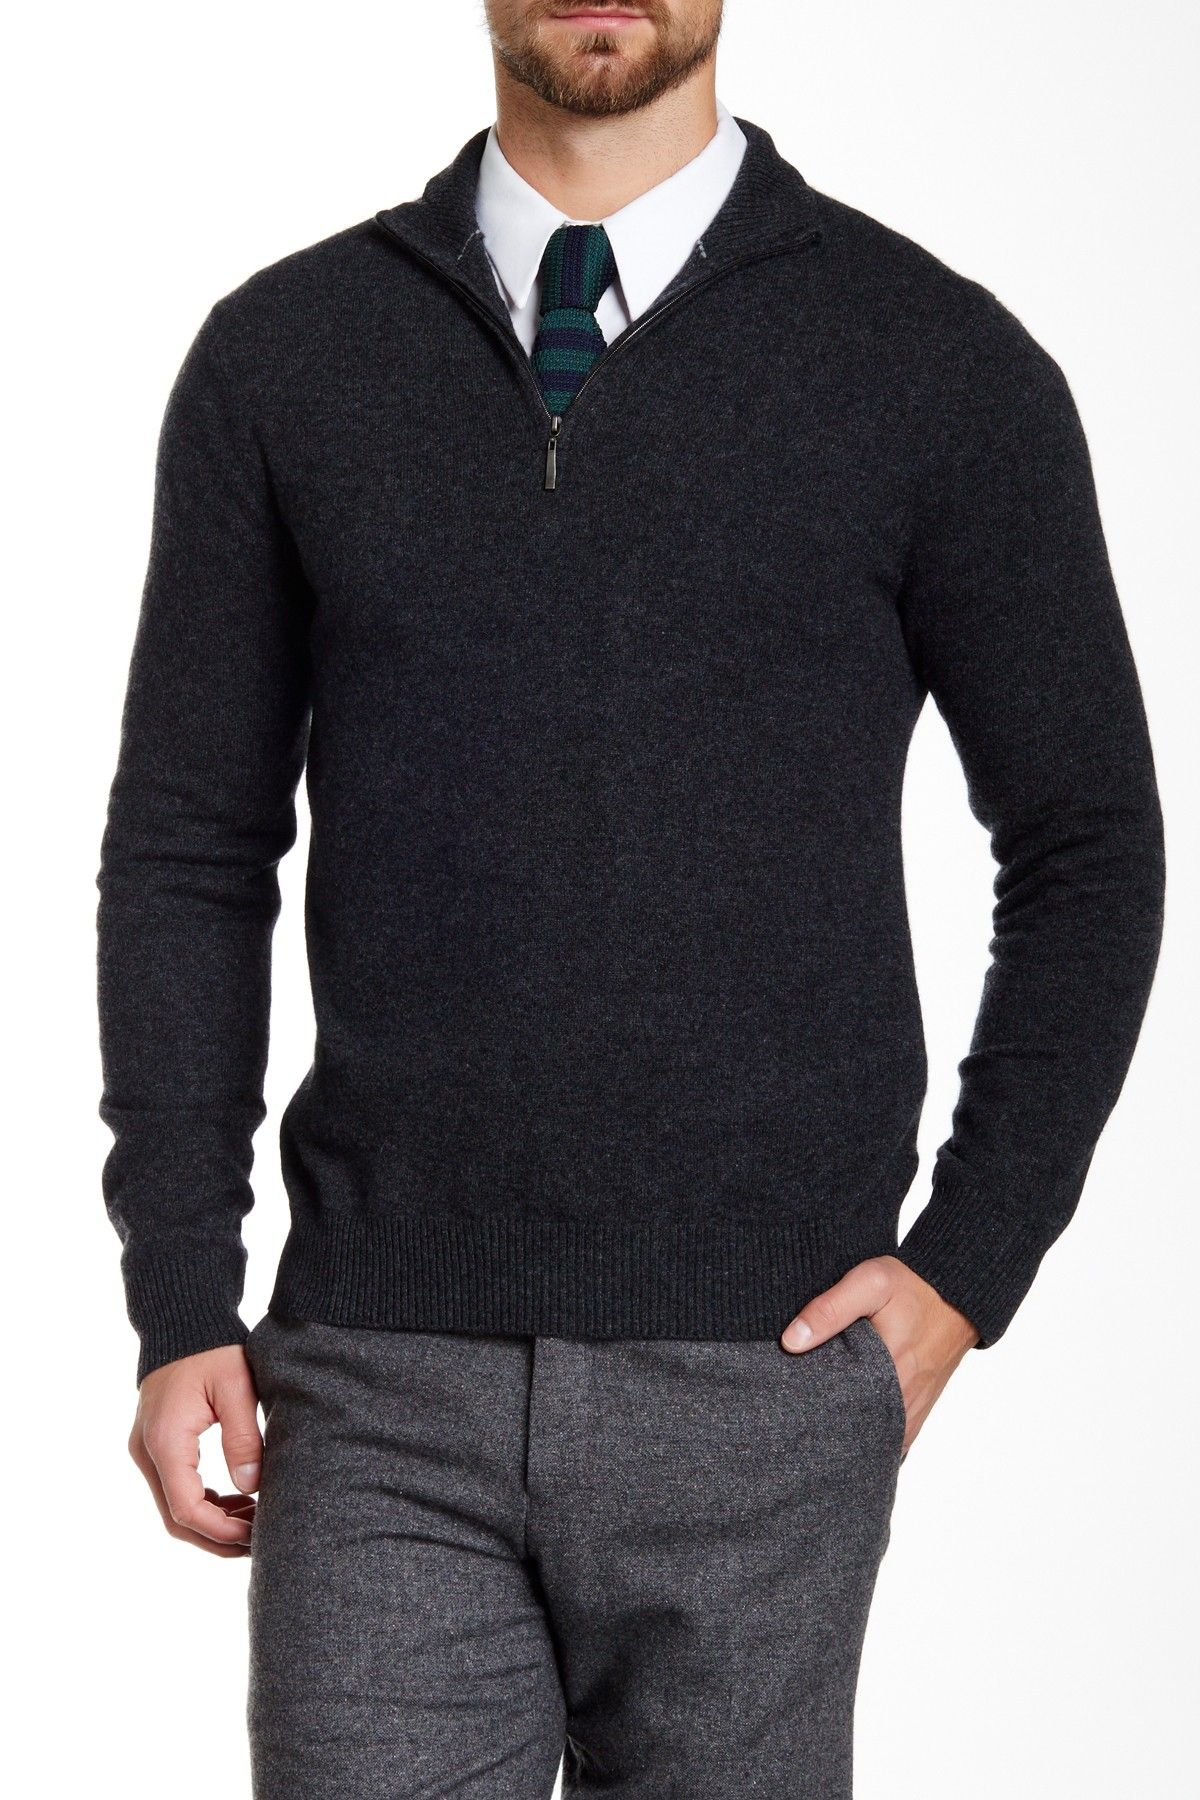 b5b42c4f4671 Qi | Cashmere Funnel Neck Sweater | Nordstrom Rack. Find this Pin and more  on Men's apparel ...